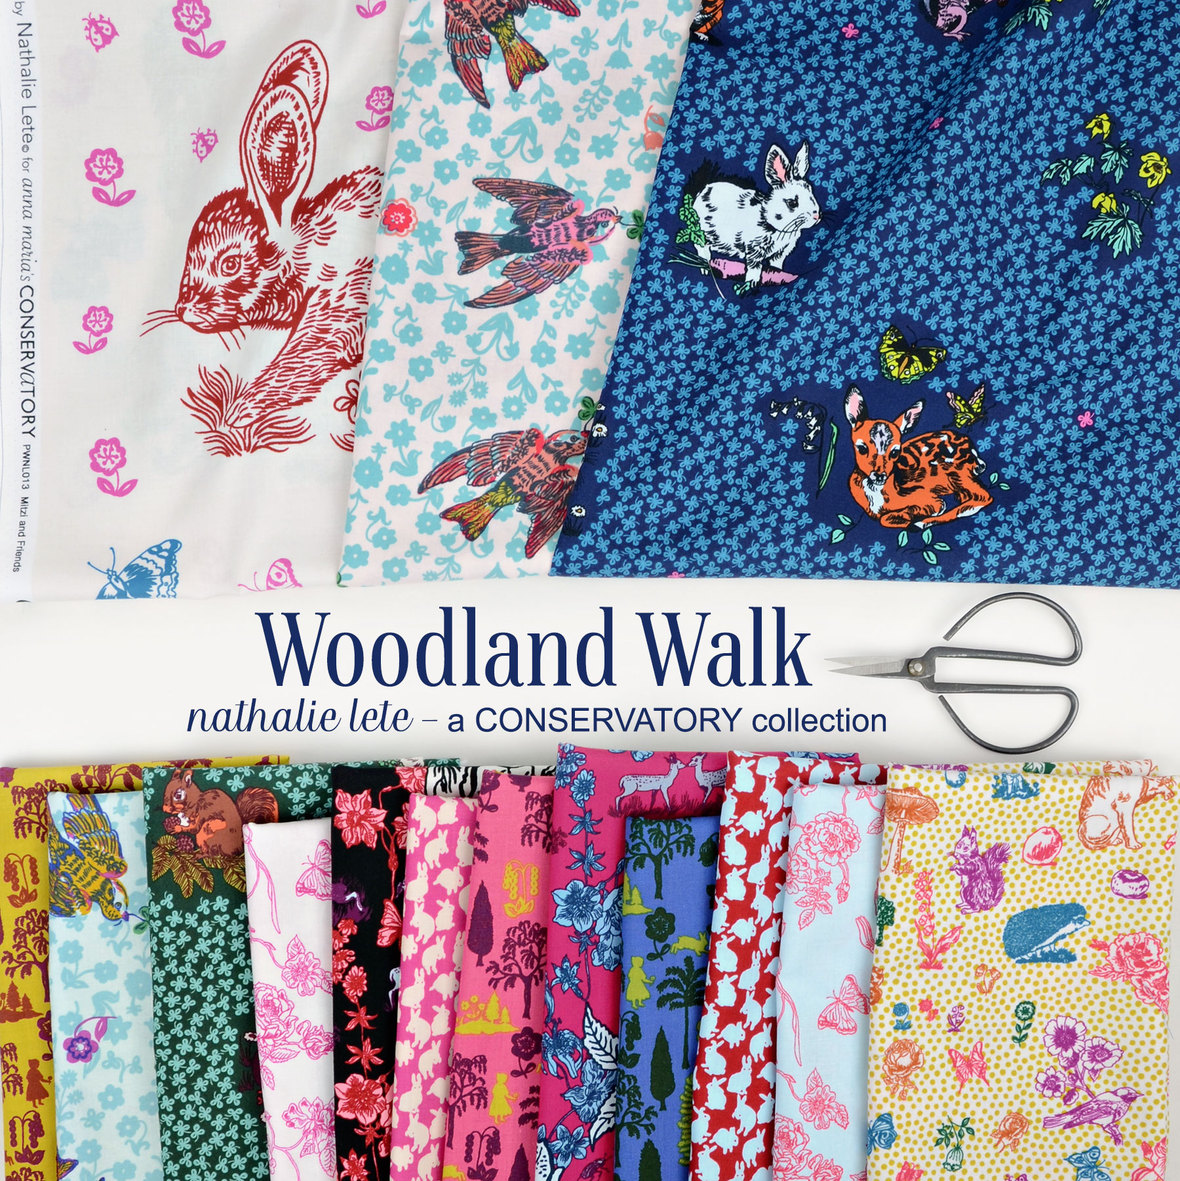 Woodland-Walk-fabric-Natalie-Lete-for-Anna-Maria-Horner-and-Conservatory-and-Free-Spirit-at-Hawthorne-Supply-Co